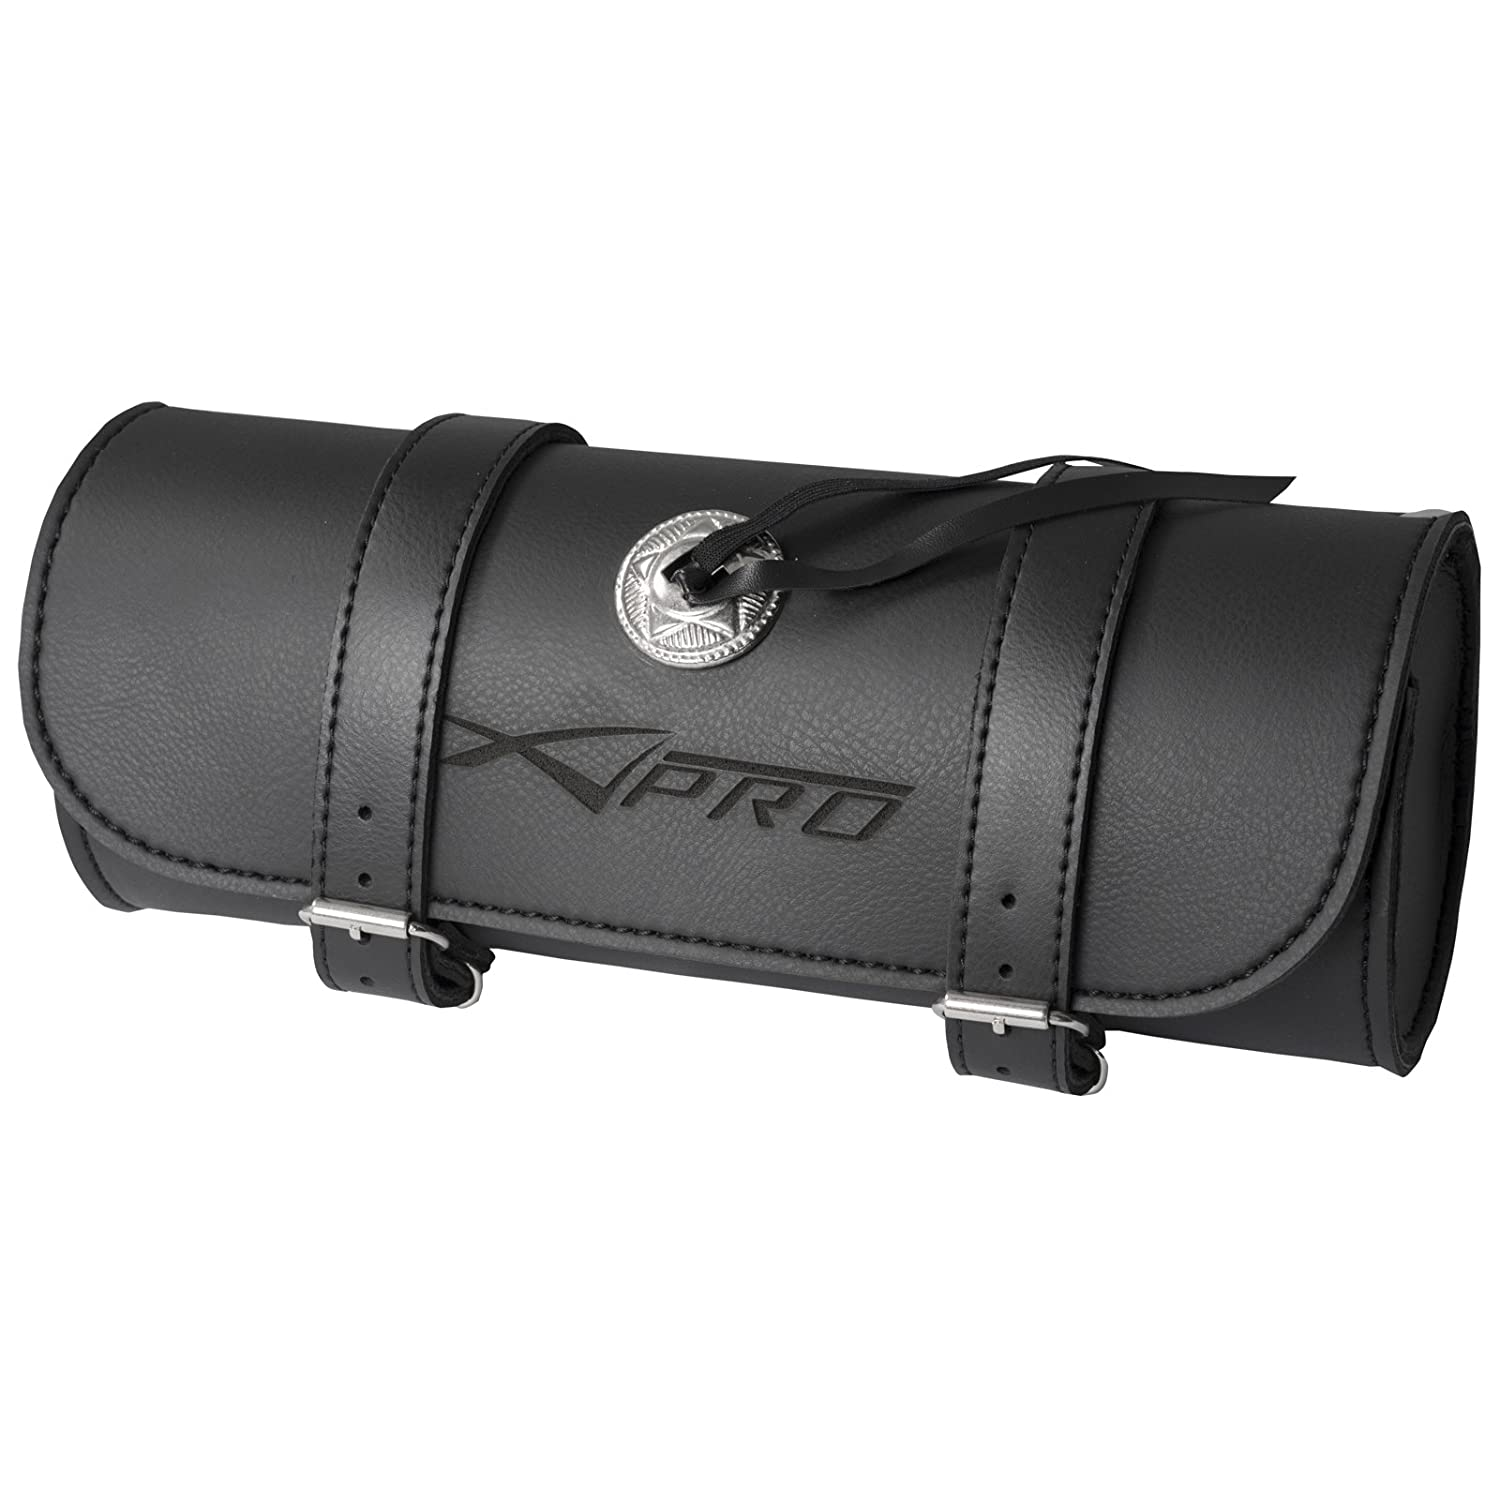 A-Pro Outil de Pro A Roll Saddle Bag Moto Bike Moto Panniers 32  x 13  cm Noir 5180000023447